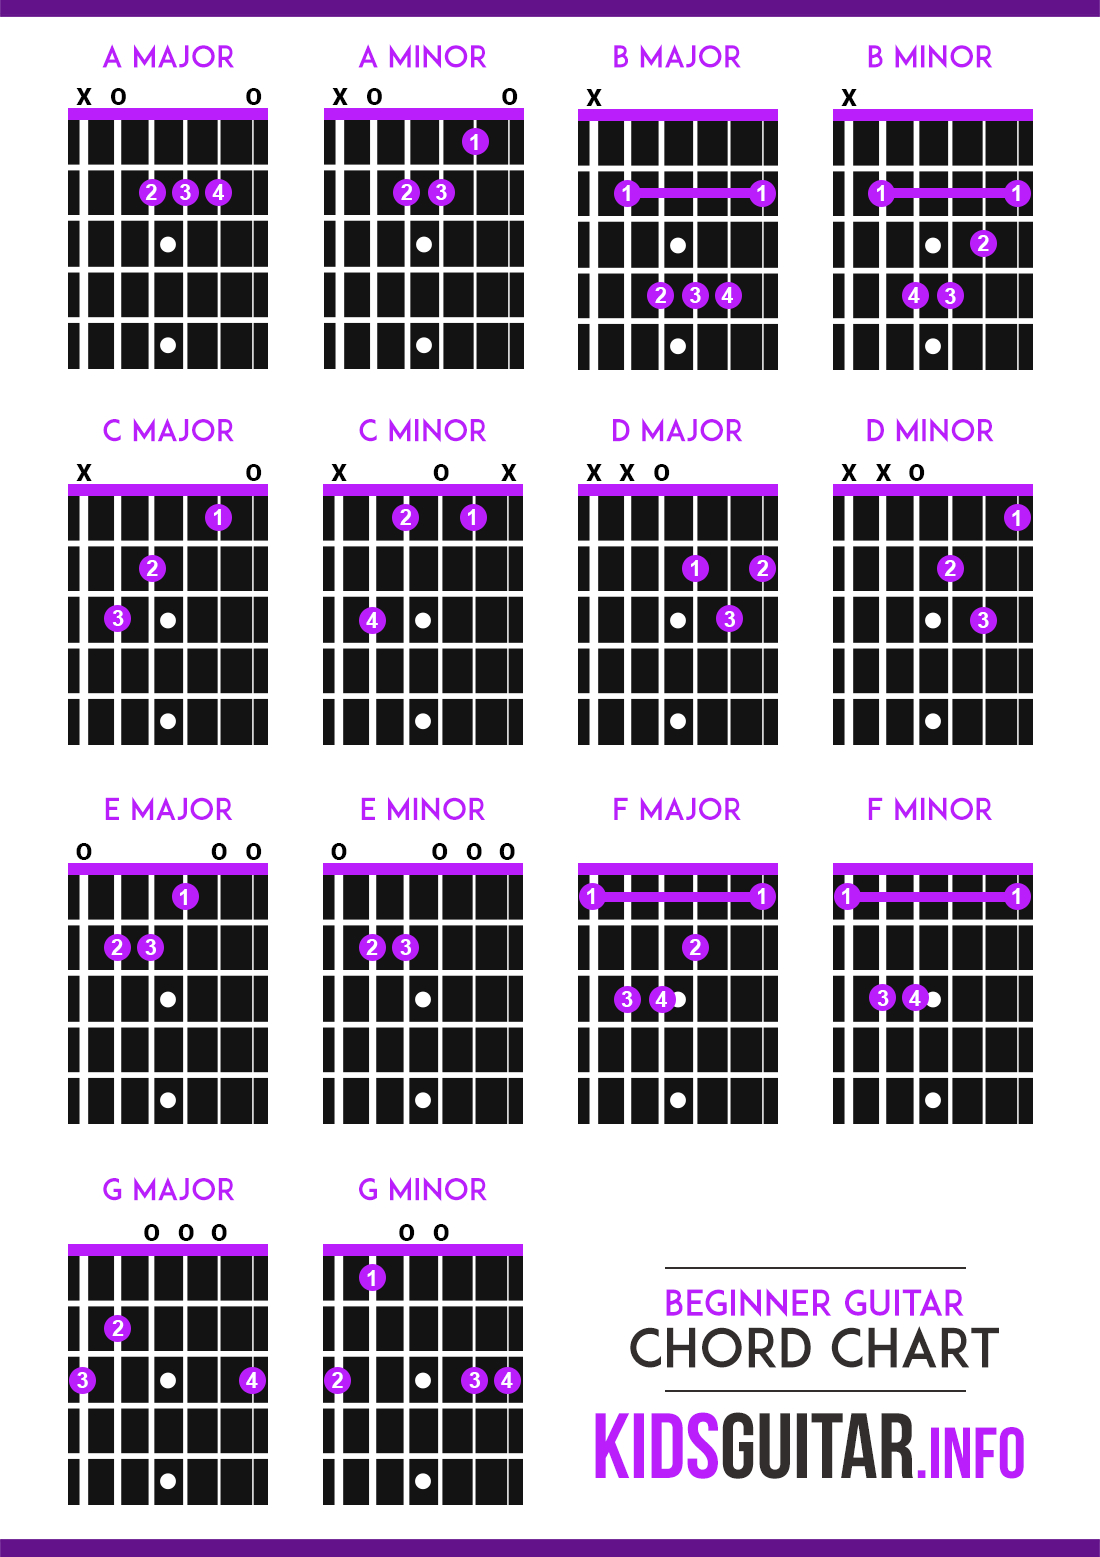 B Minor Guitar Chord Beginner Guitar Chords Lesson With Sound And Printable Chart